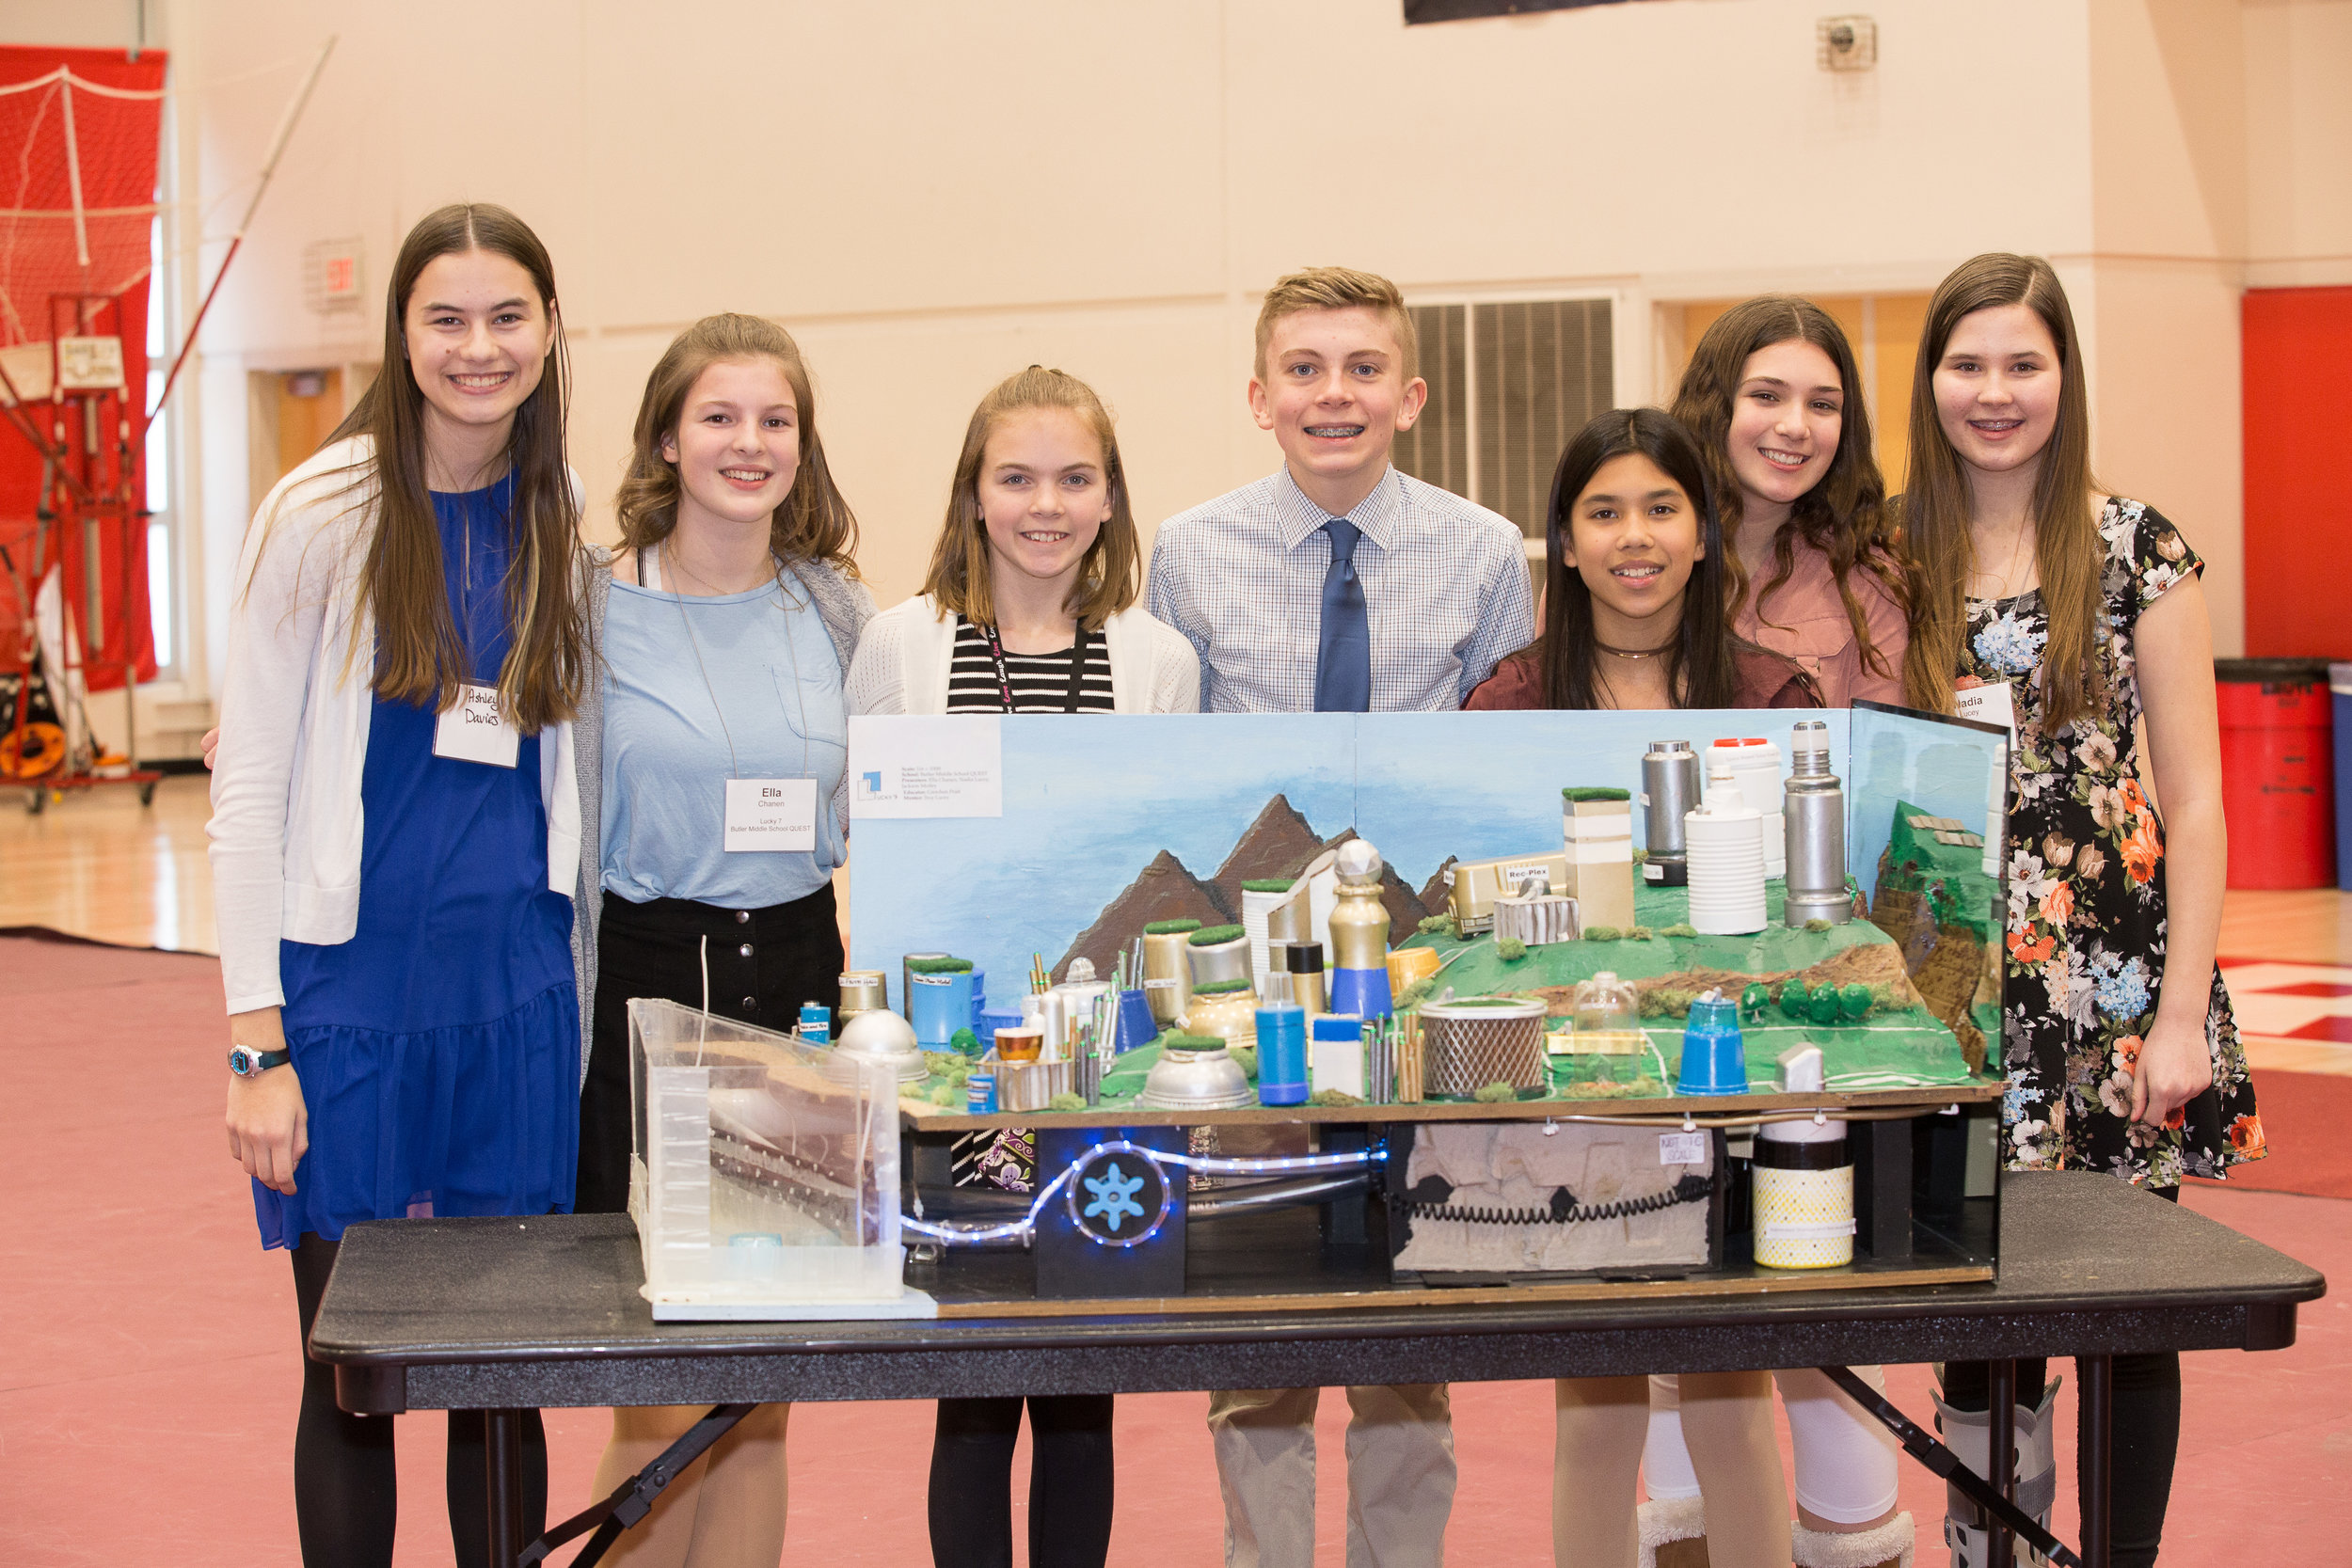 Butler Middle School students are going to Washington D.C. to compete in Nationals!